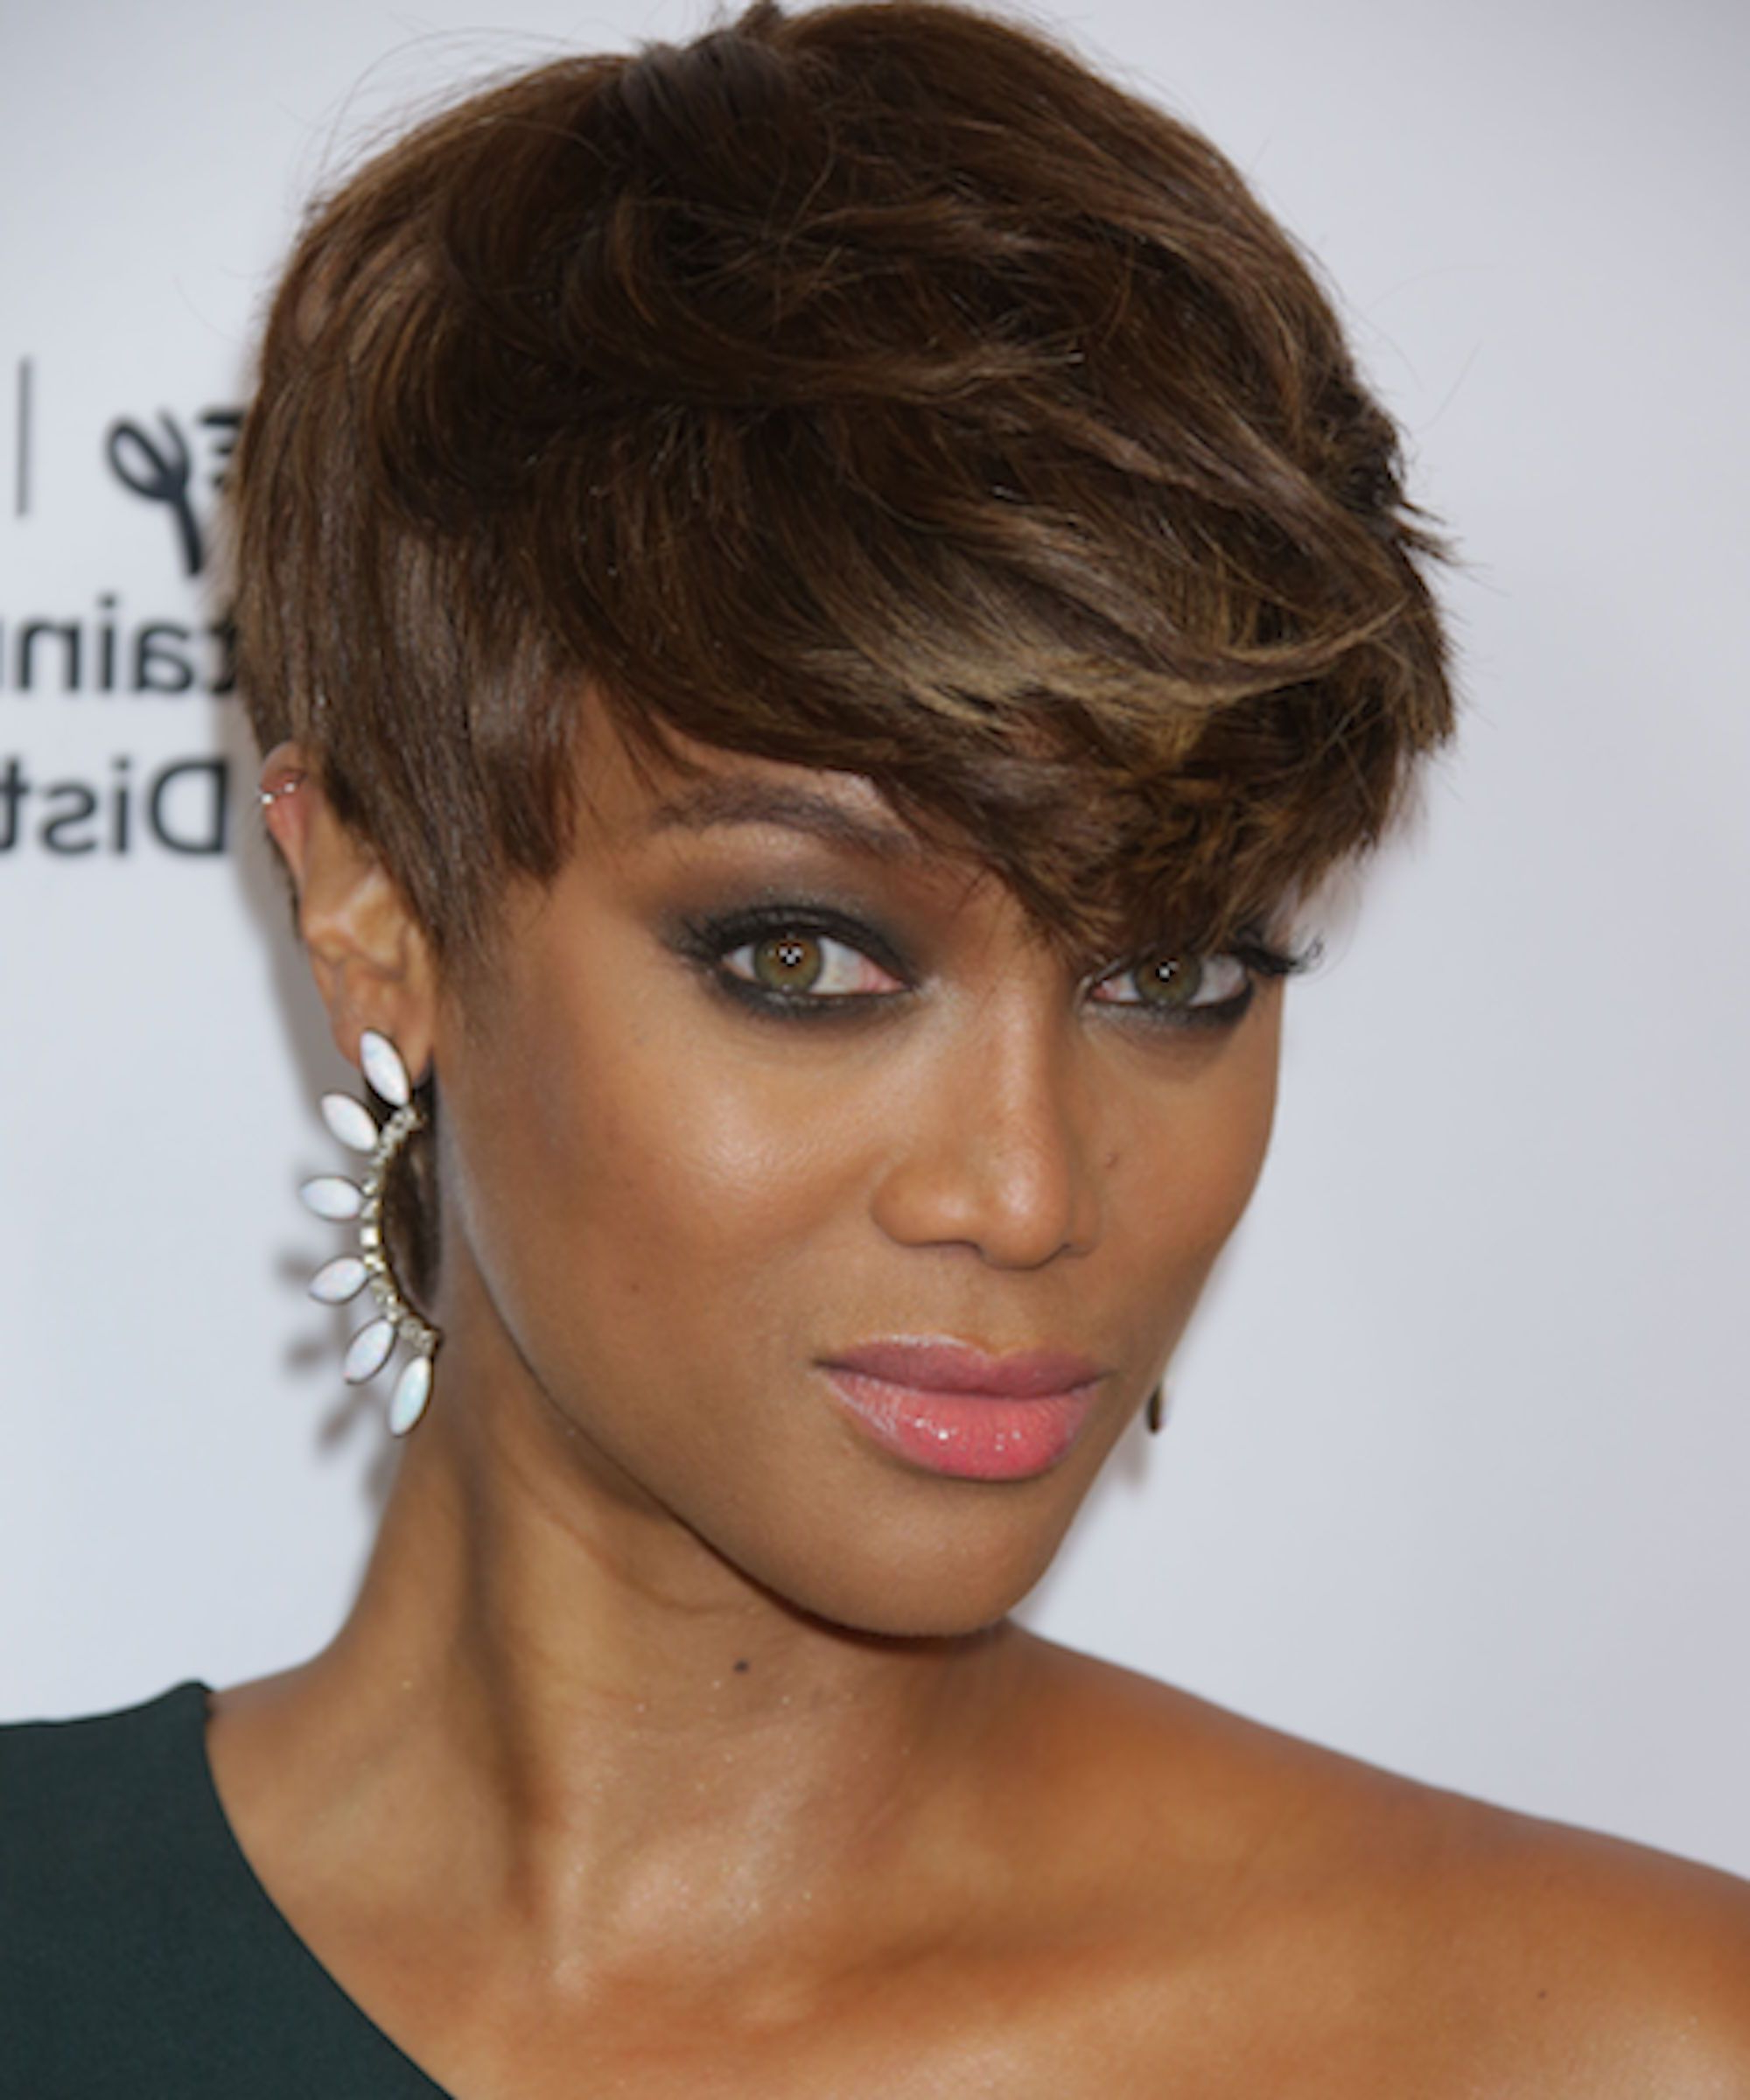 Tyra Banks Is Leaving Her Own Show After 3 Months In 2018 | Hair Pertaining To Tyra Banks Short Hairstyles (View 8 of 25)